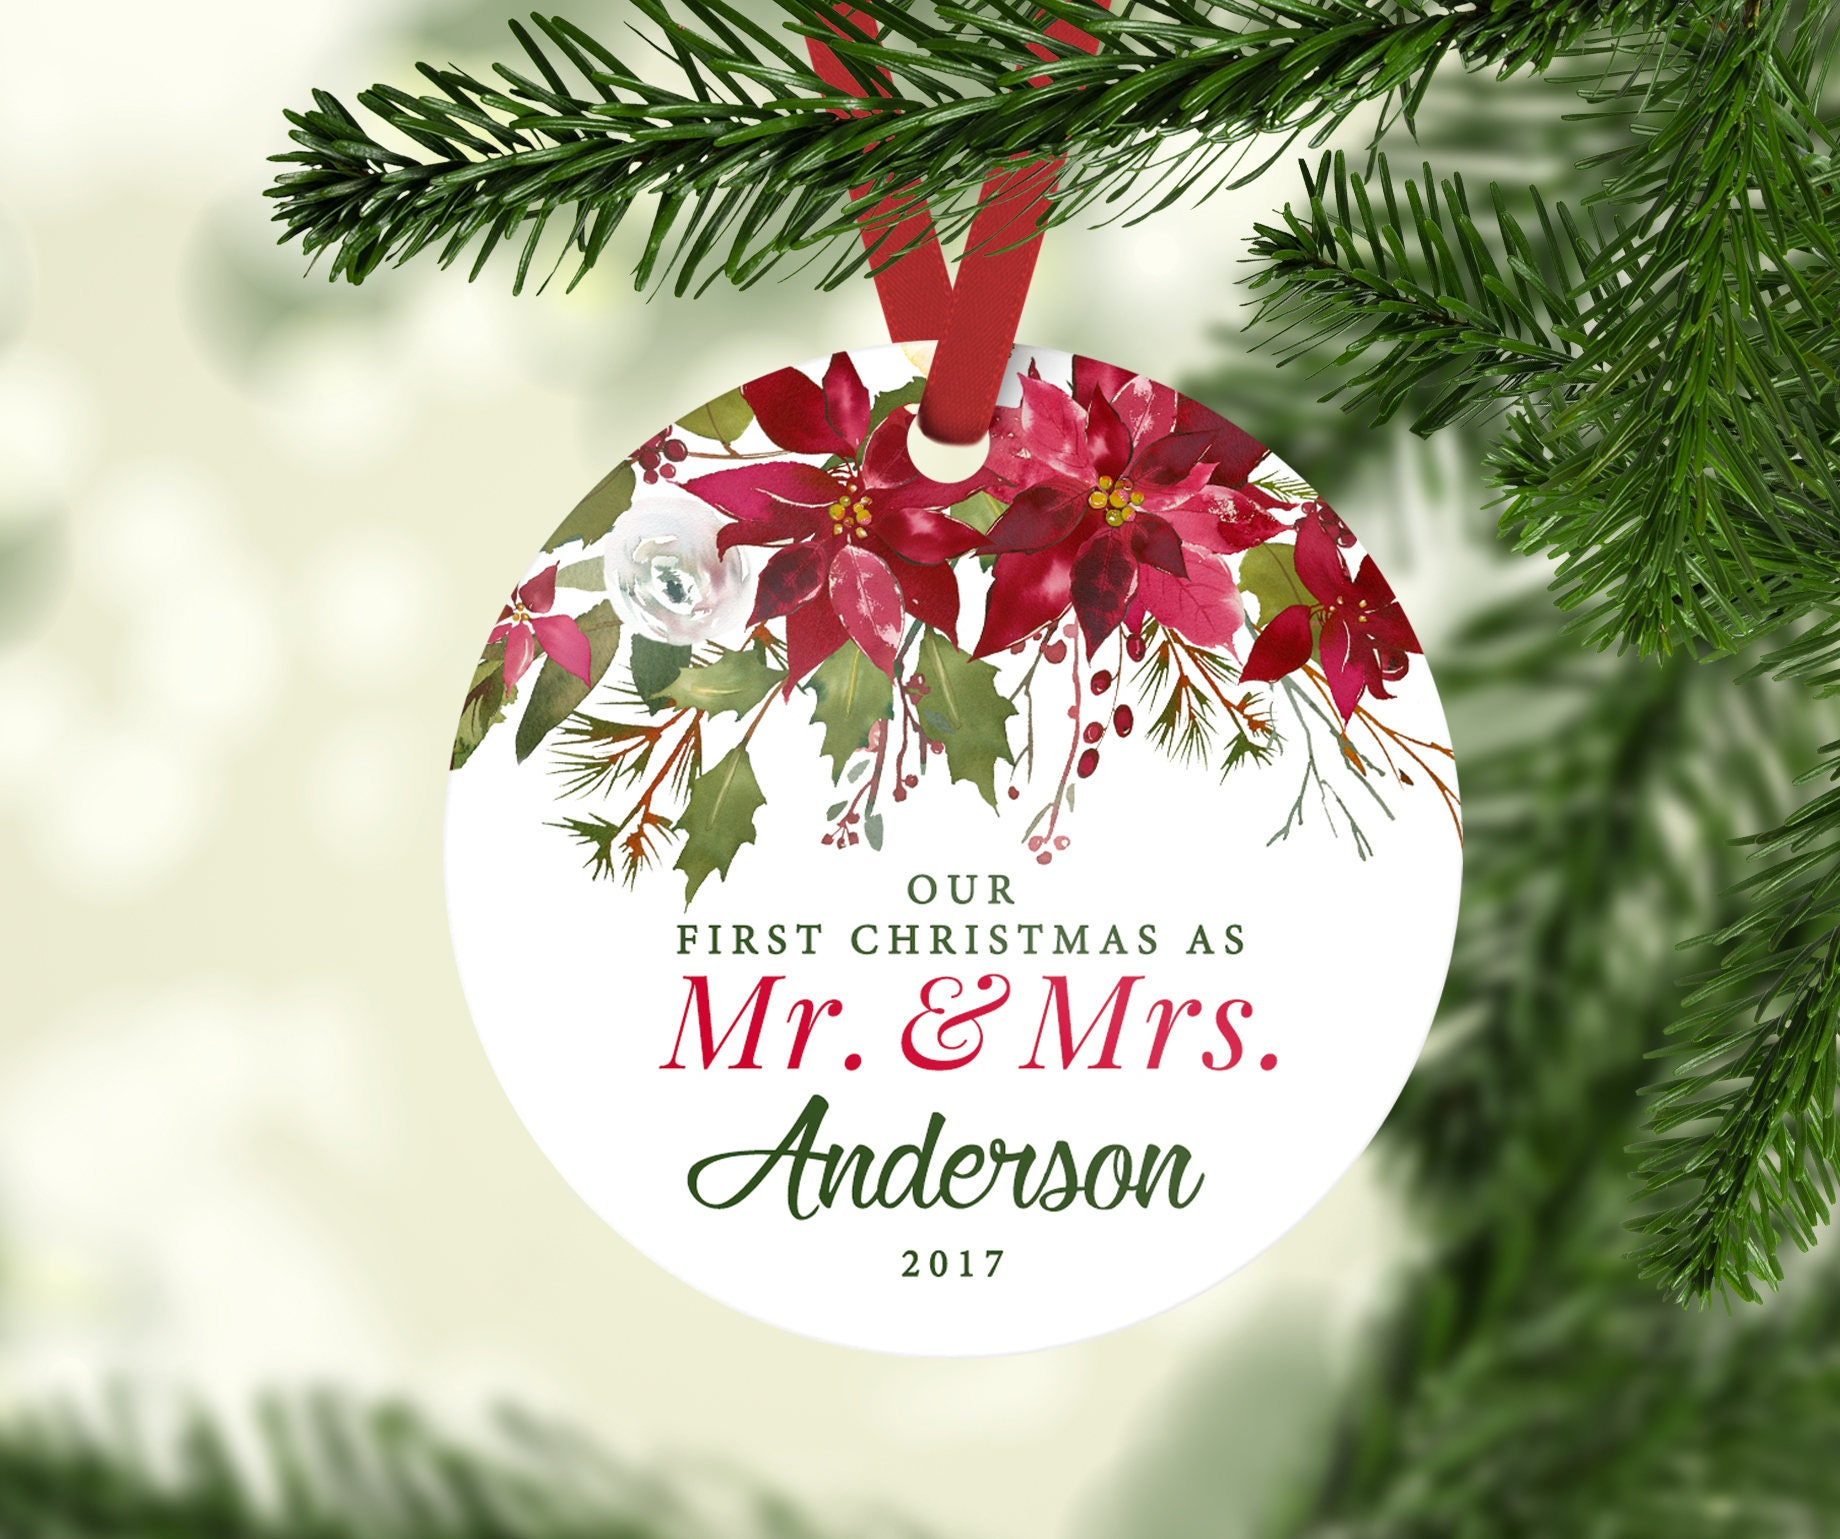 Our First Married Christmas Ornament Mr. and Mrs. Ornaments   Etsy